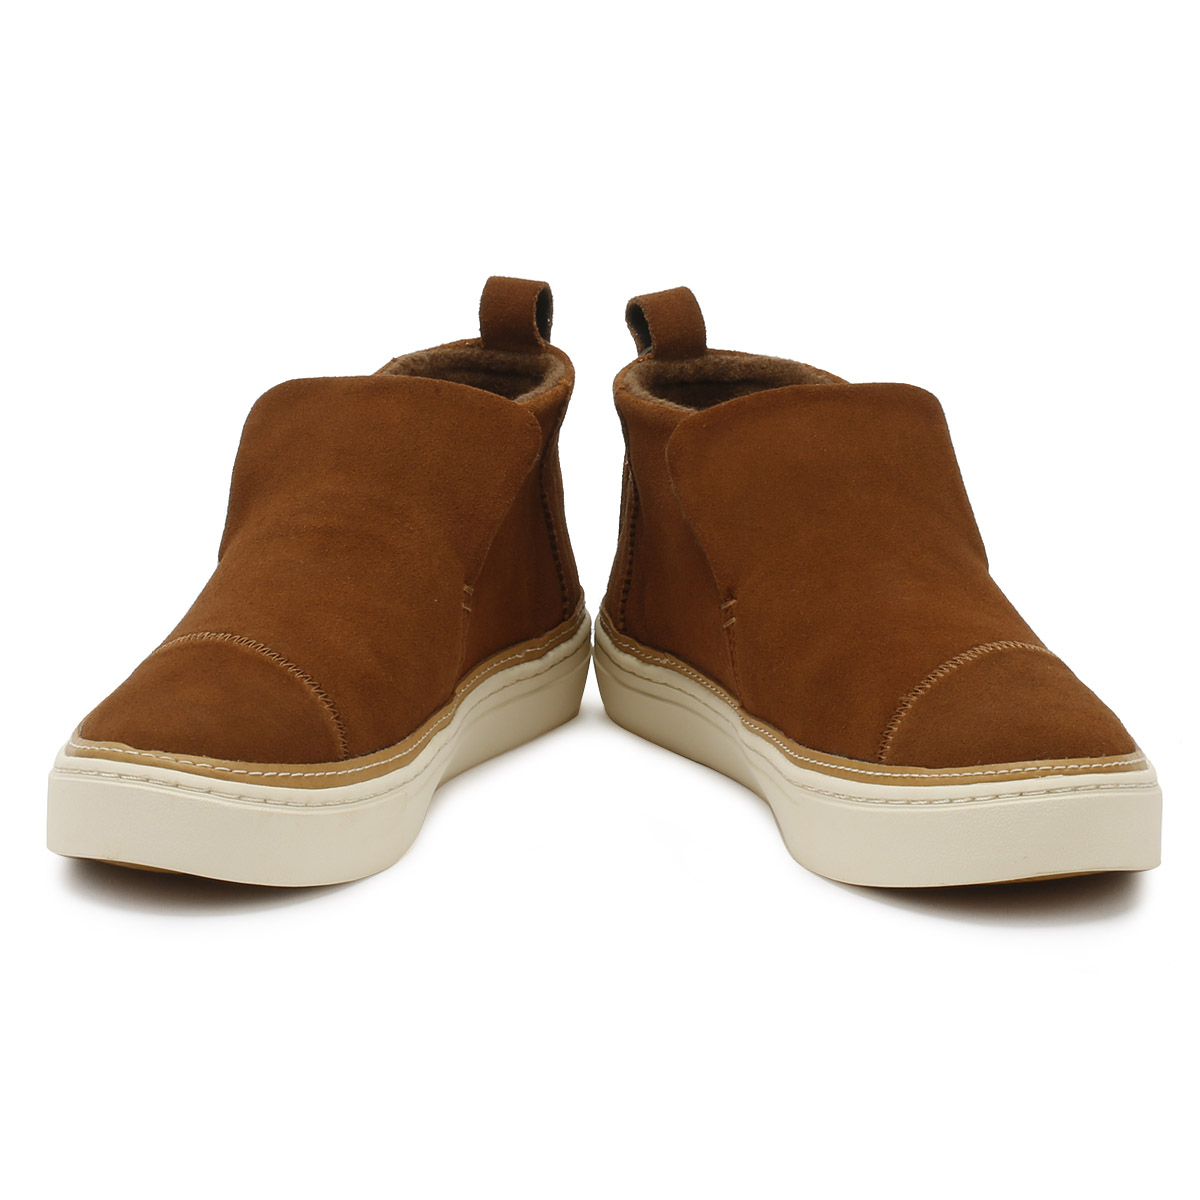 d901391531c TOMS Womens Dark Amber Brown Suede Paxton Shoes Casual Ankle Boots ...